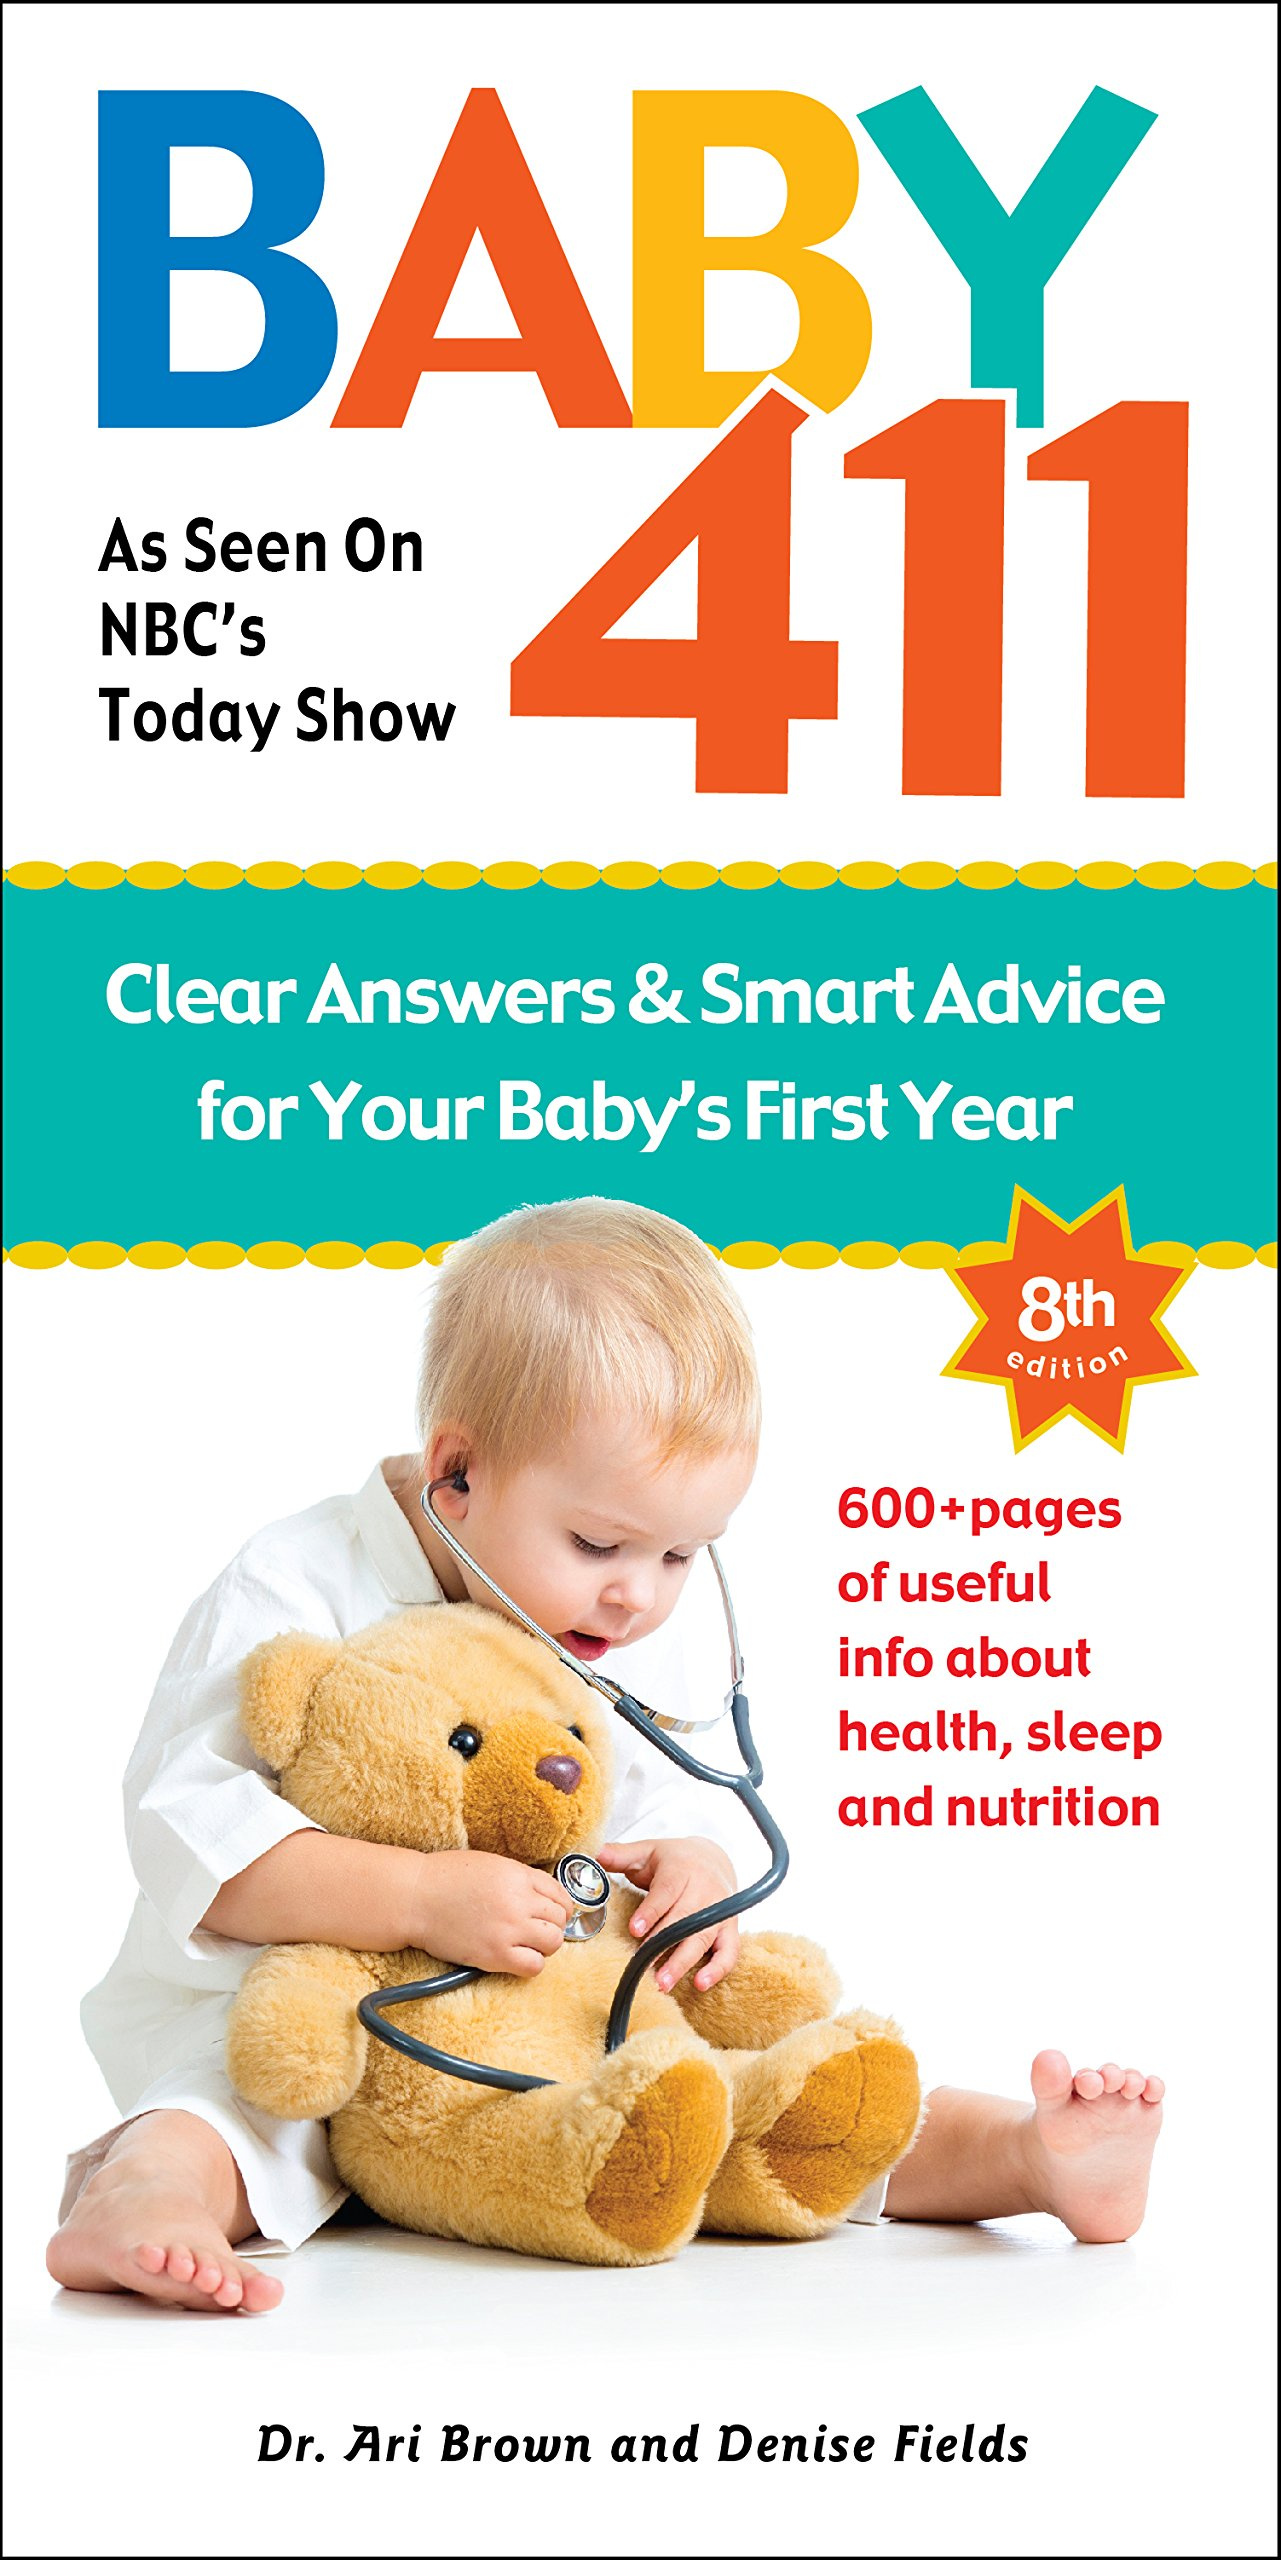 Baby 411: Clear Answers & Smart Advice for Your Baby's First Year by Windsor Peak Press